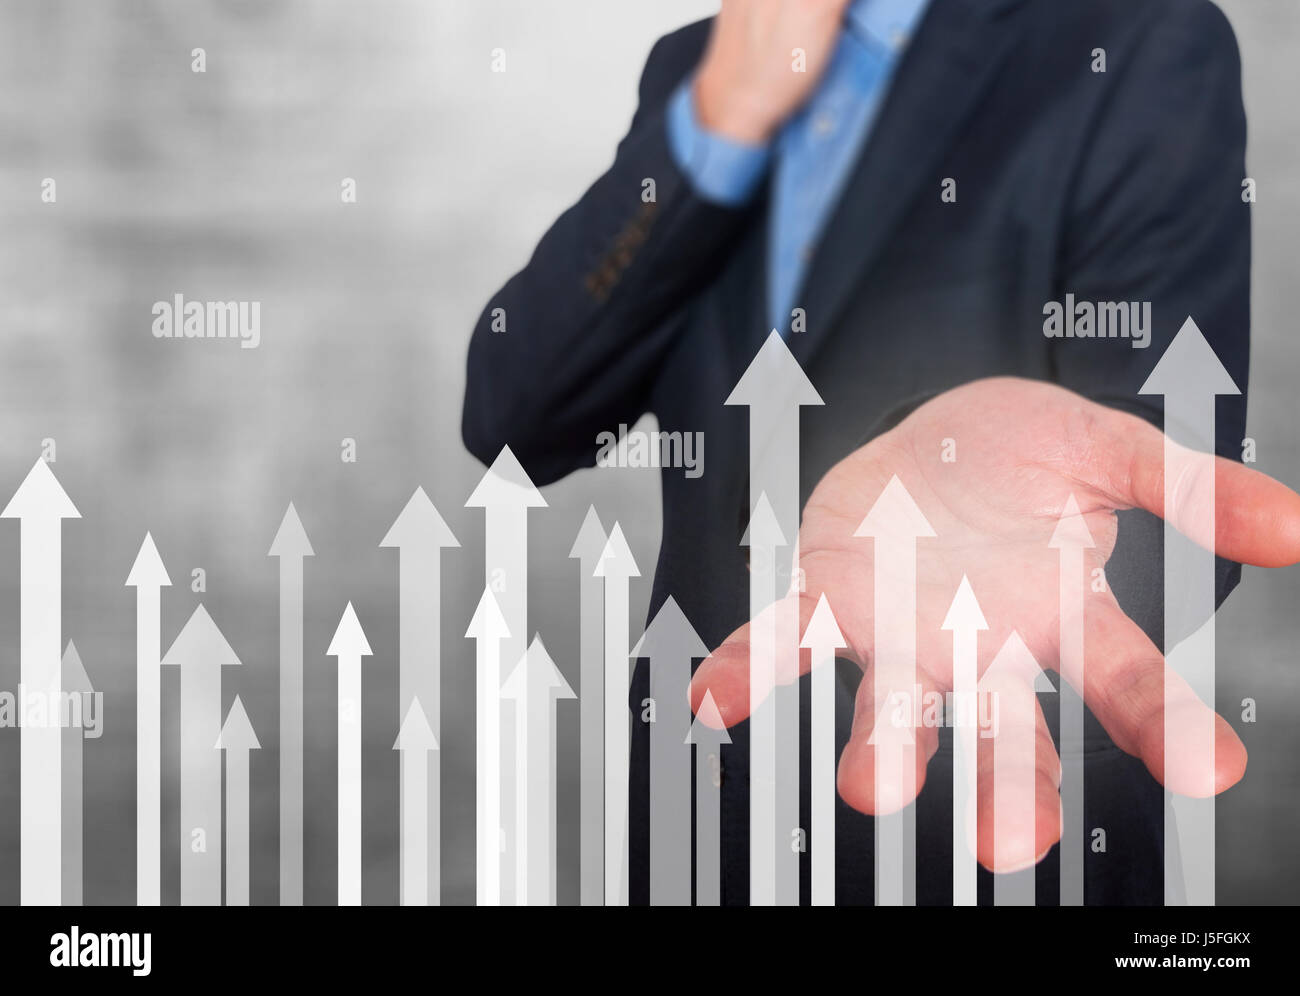 Businessman with financial symbols coming. Business, growth, investment concept. Man hand showing arrows. Isolated - Stock Image